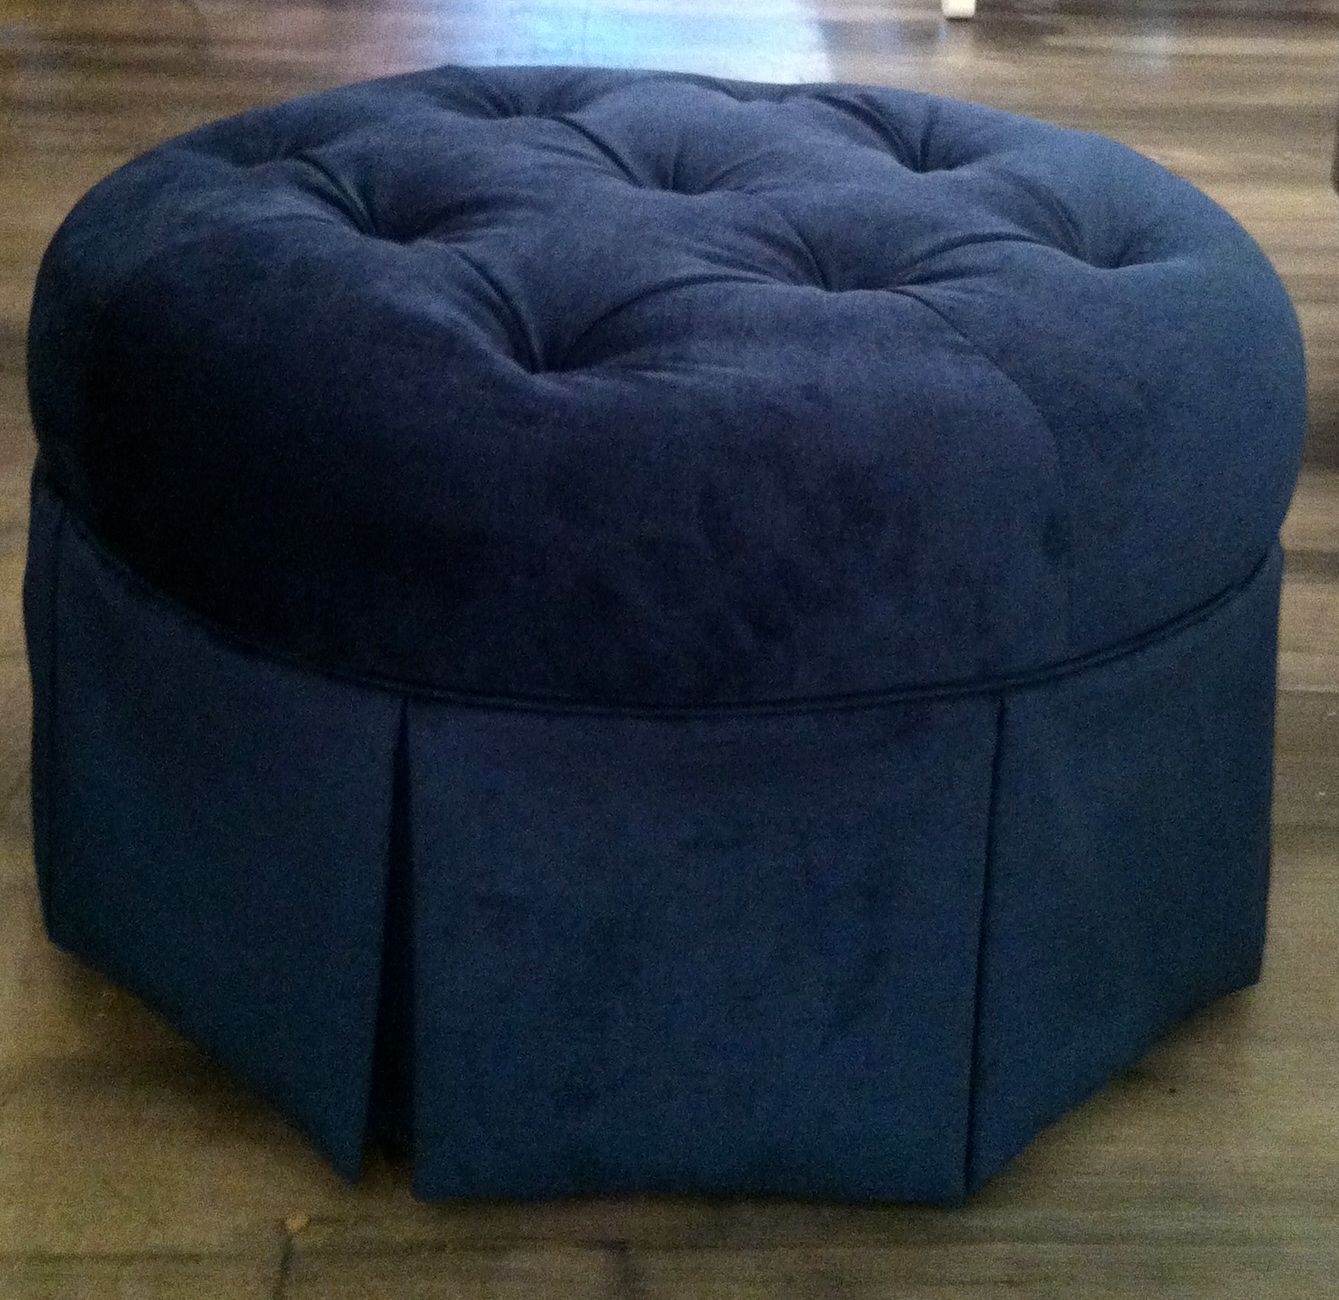 Tufted Round Ottoman from